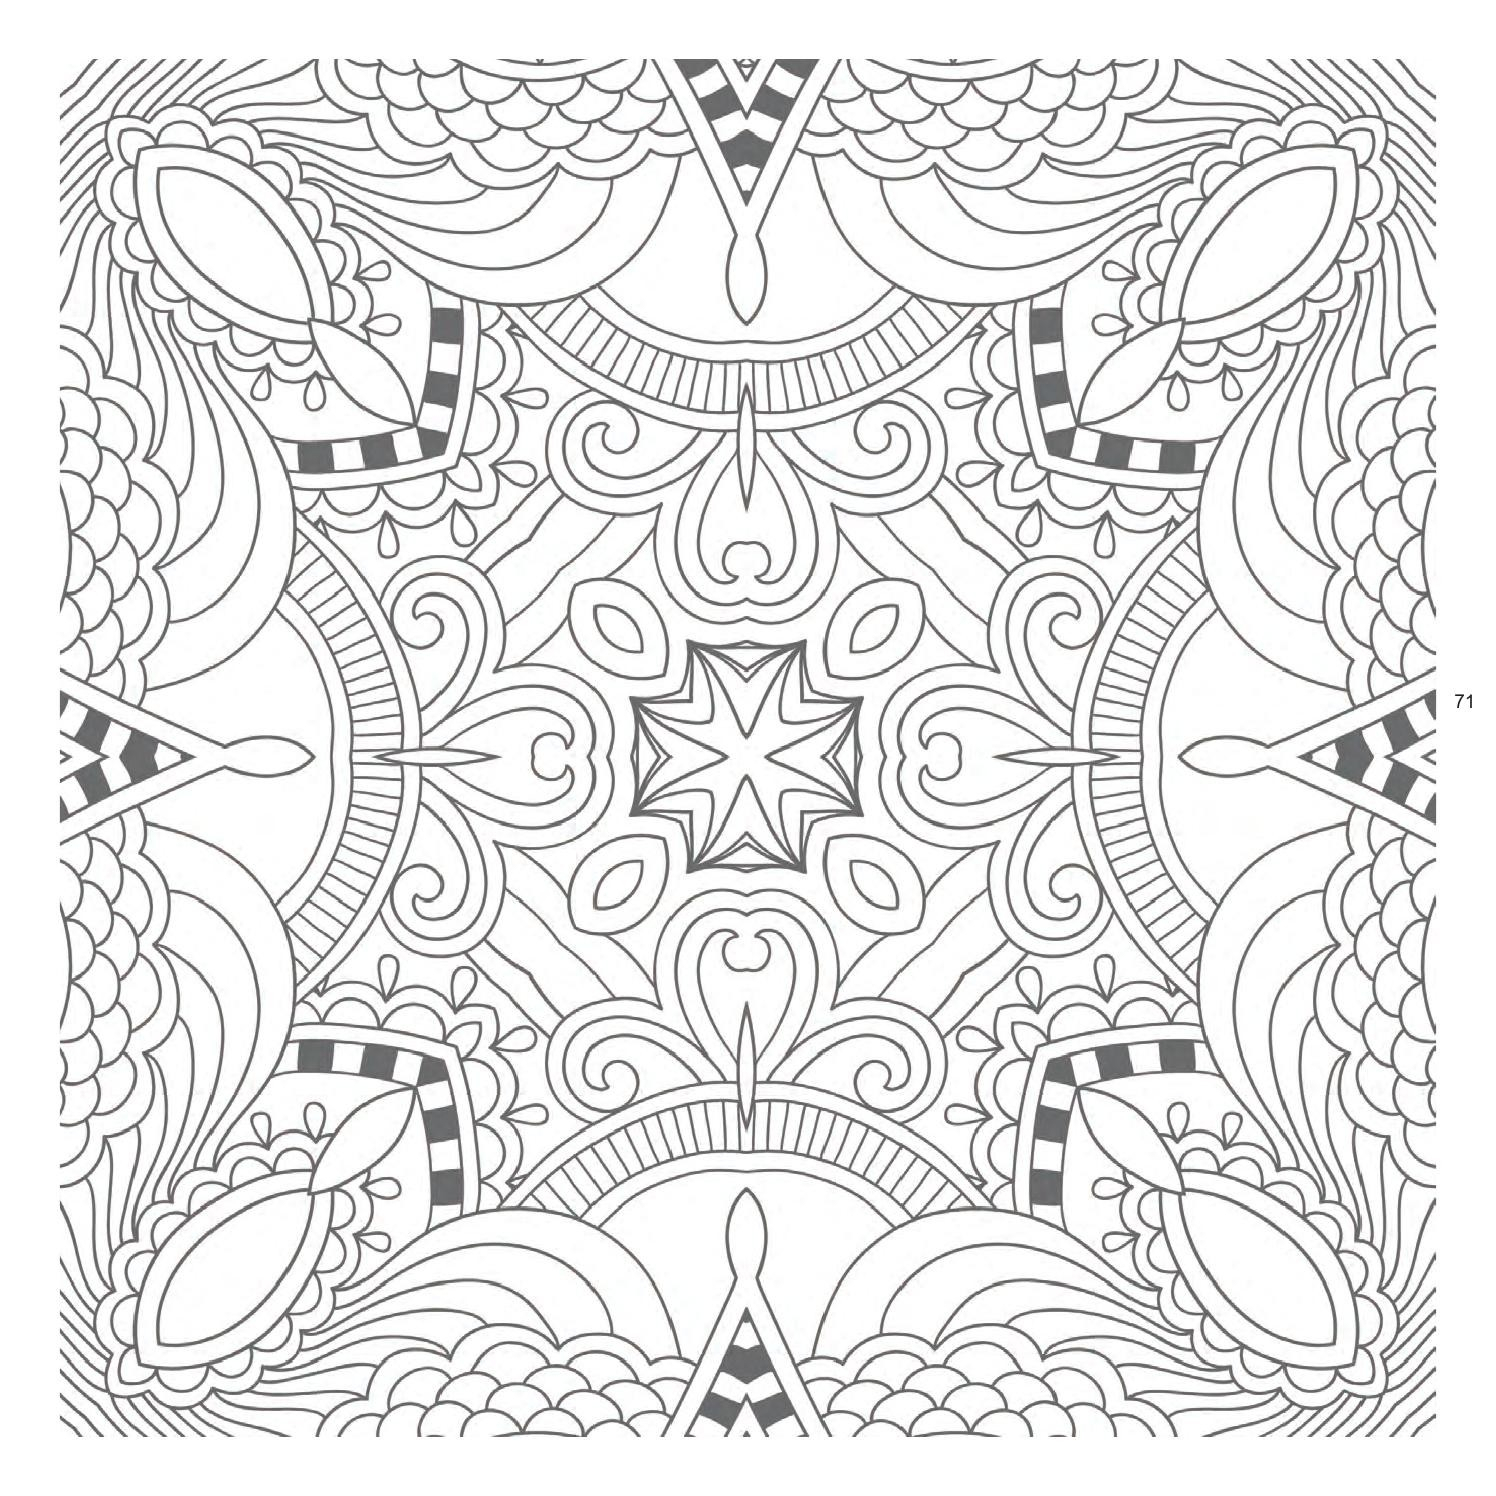 Marker Coloring Pages Collection | Free Coloring Sheets